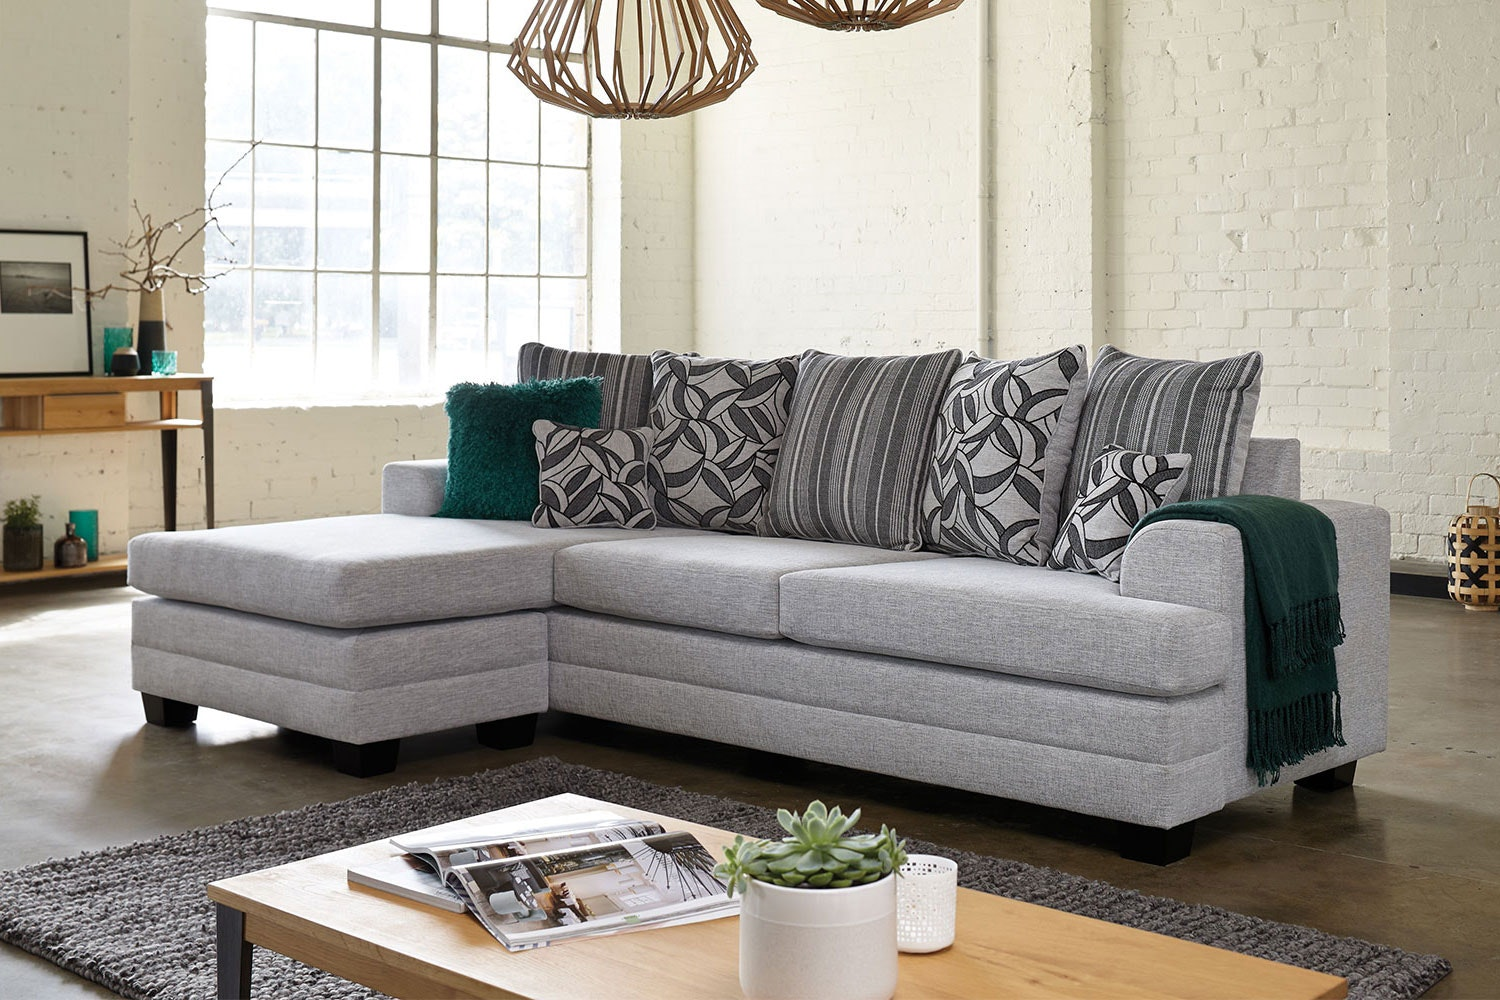 Evolution 3 Seater Fabric Sofa with Chaise by White Rose Furniture